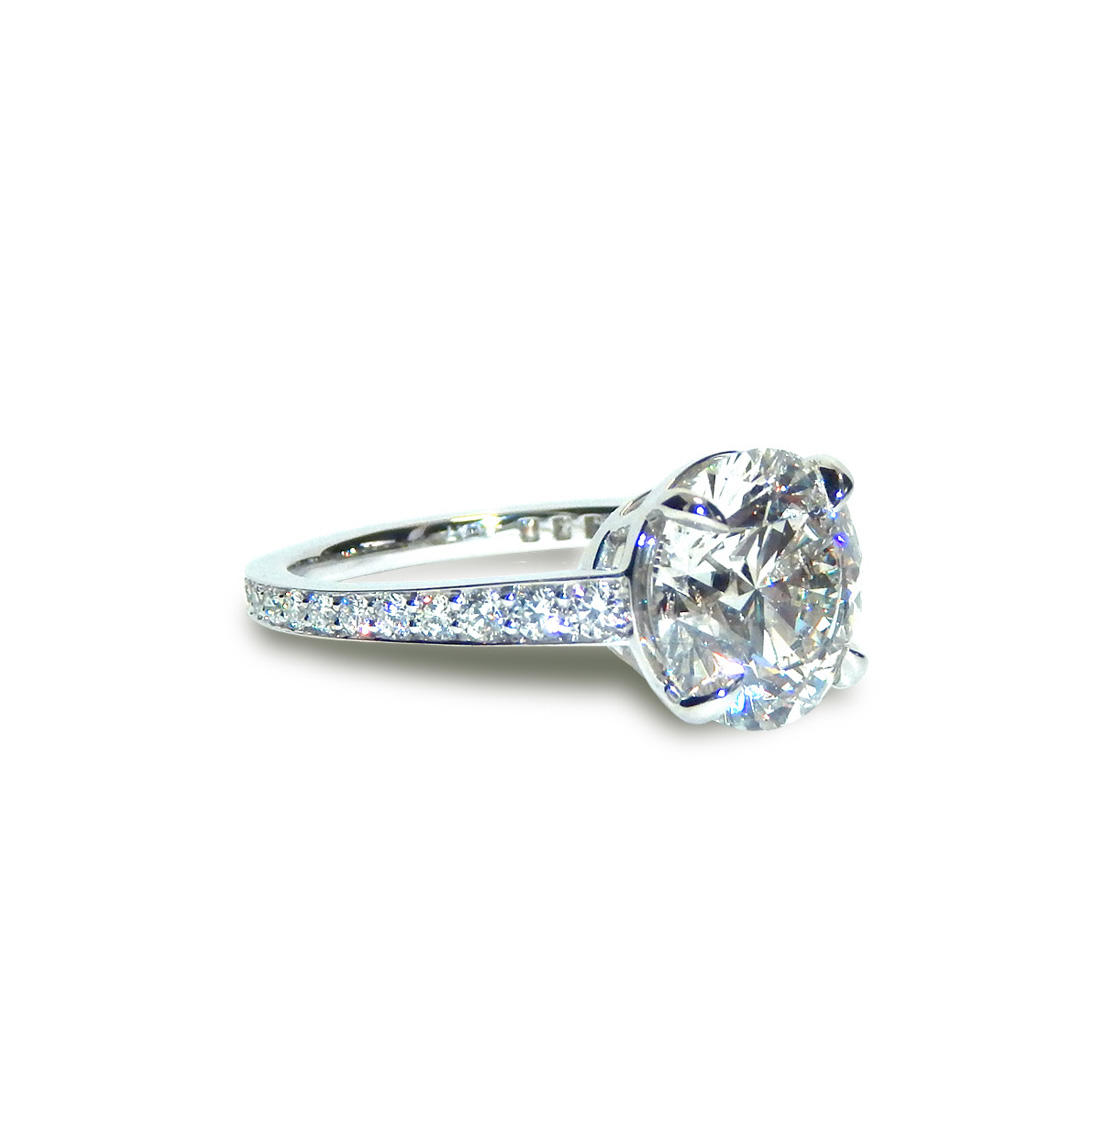 4CT ROUND DIAMOND ENGAGEMENT RING PLATINUM_V3